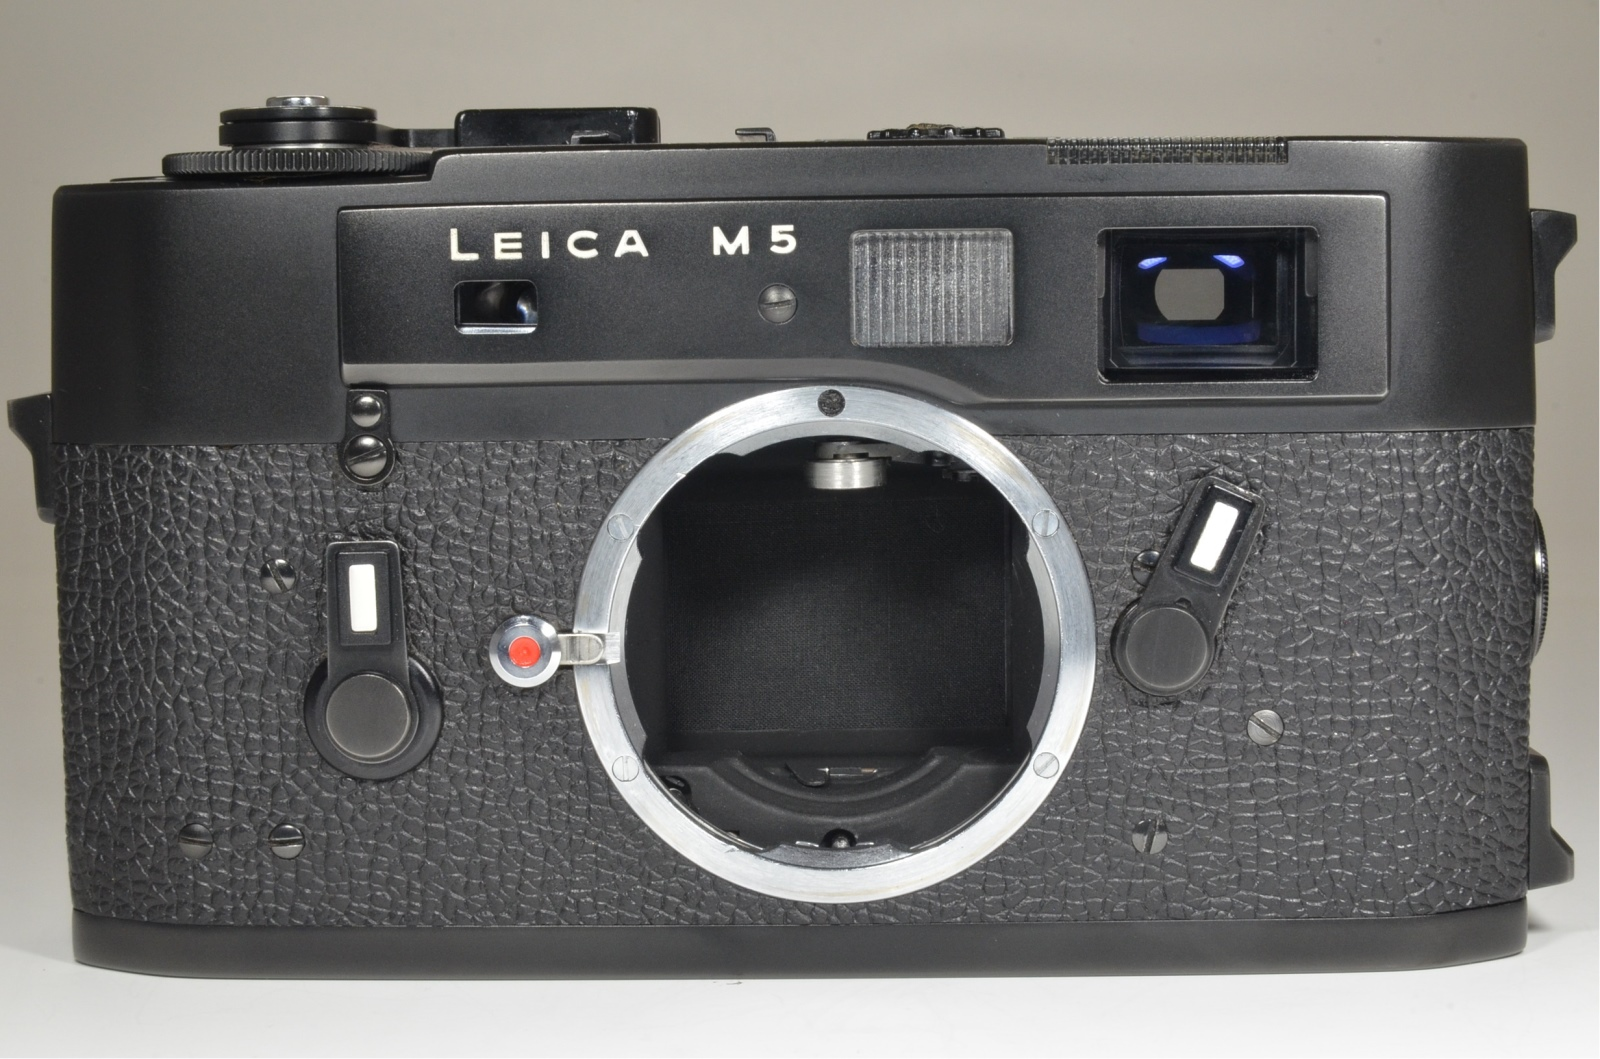 leica m5 black 3 lug serial no.1377108 year 1973 with l seal